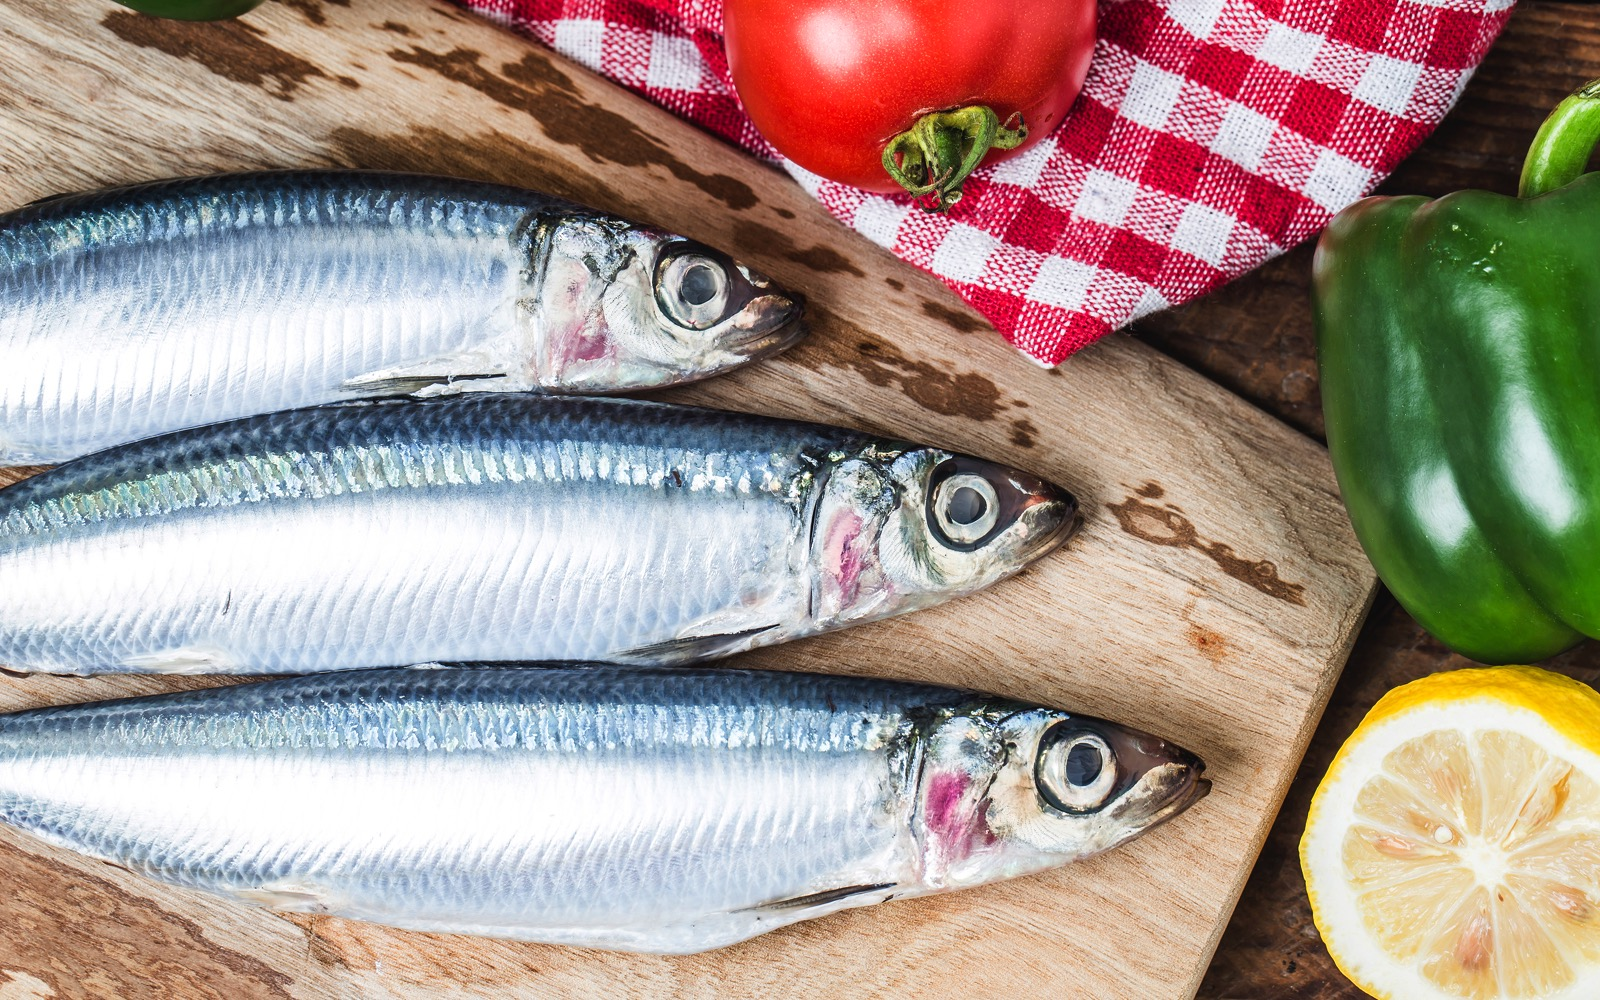 High quality sardines. World-Class Ingredients in your Kitchen. Khayyan Specialty Foods, importers, manufacturers and distributors of fine Products from Spain in West New York, NJ.